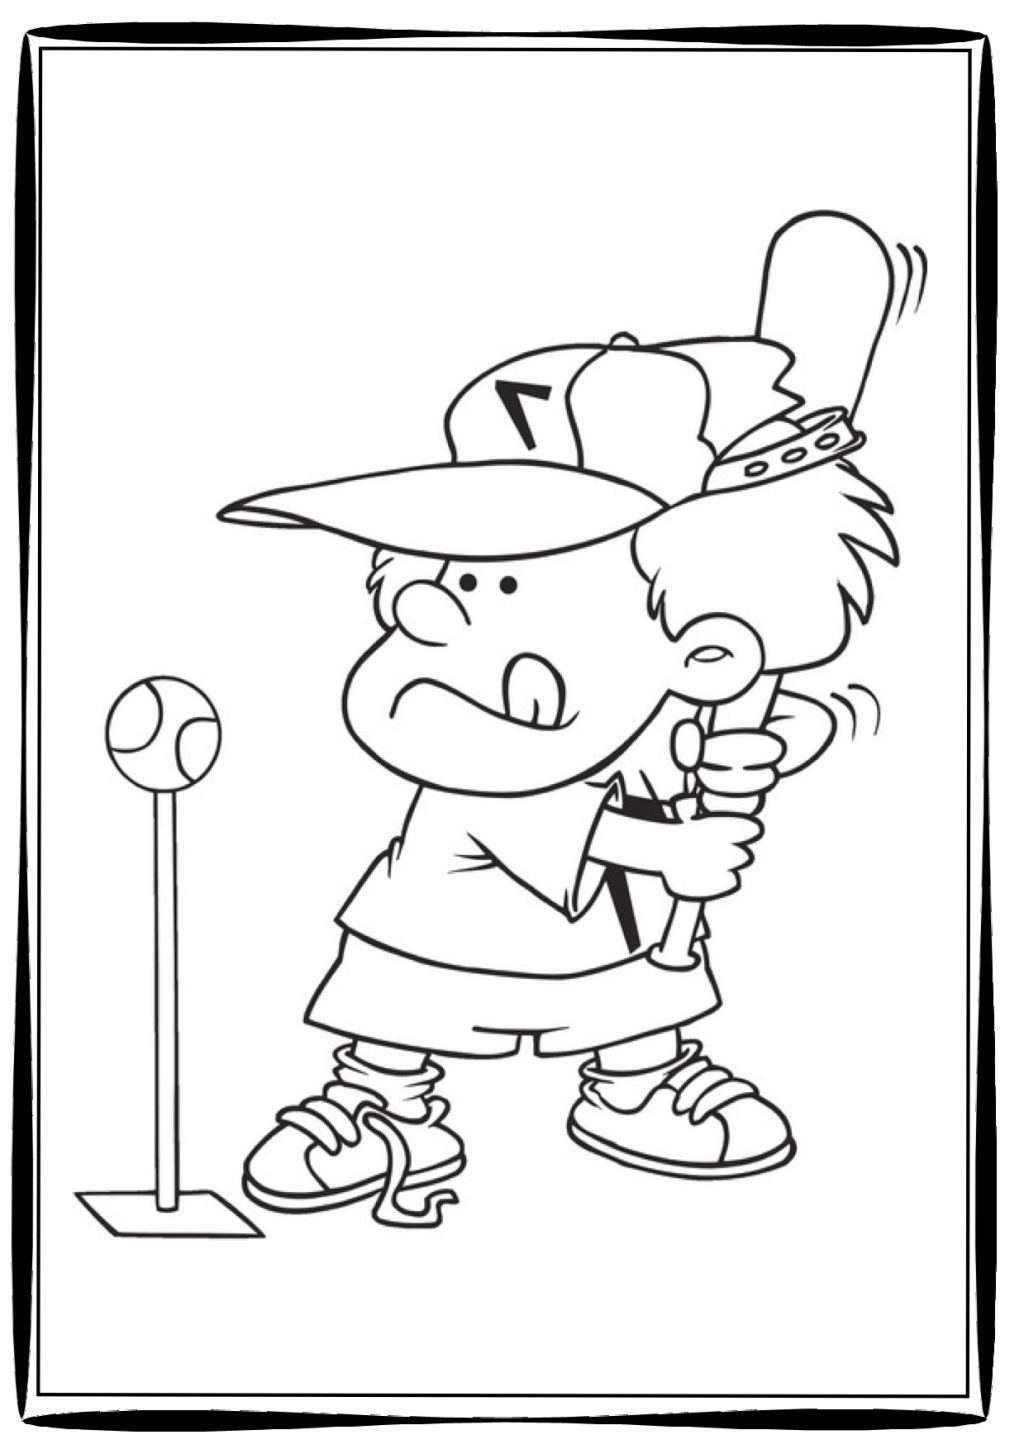 1024x1449 Coloring Pages Of Baseball Coloring Pages Kids